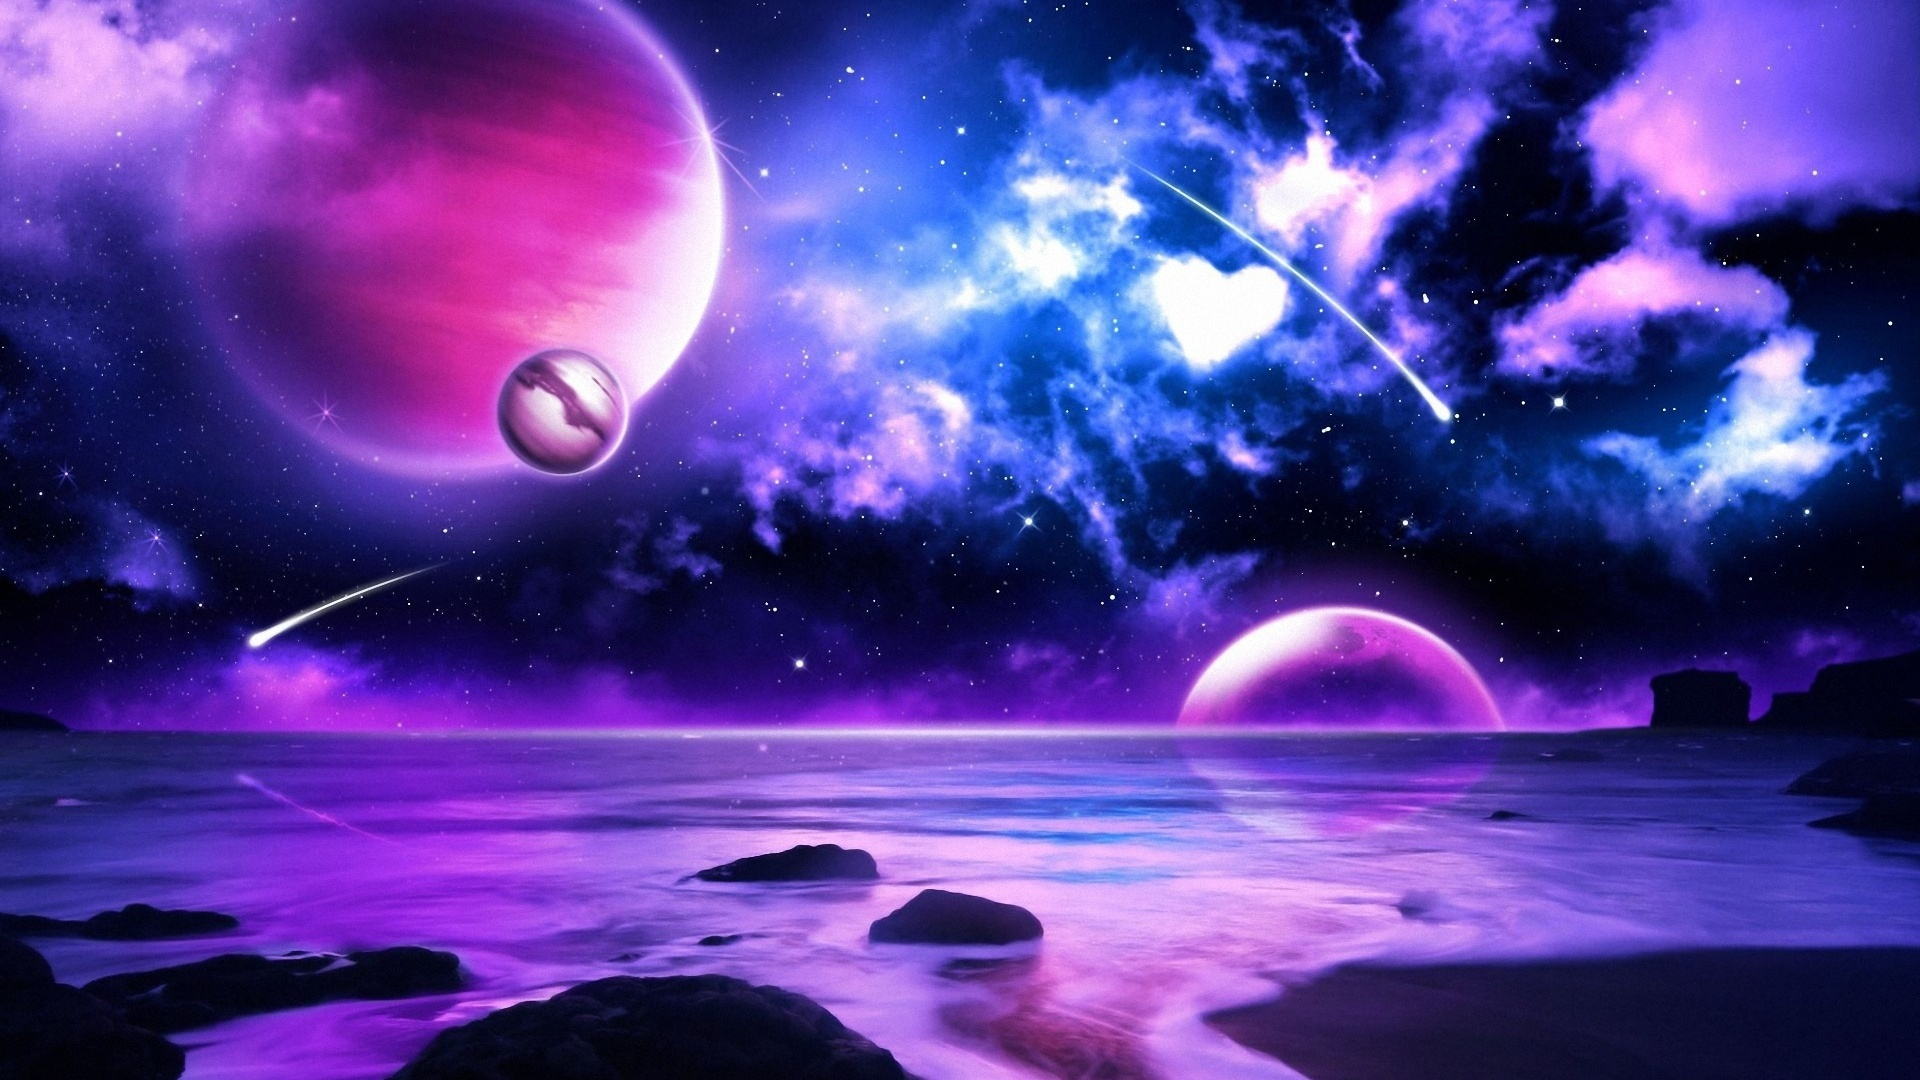 purple space wallpaper | universe and all planets pictures